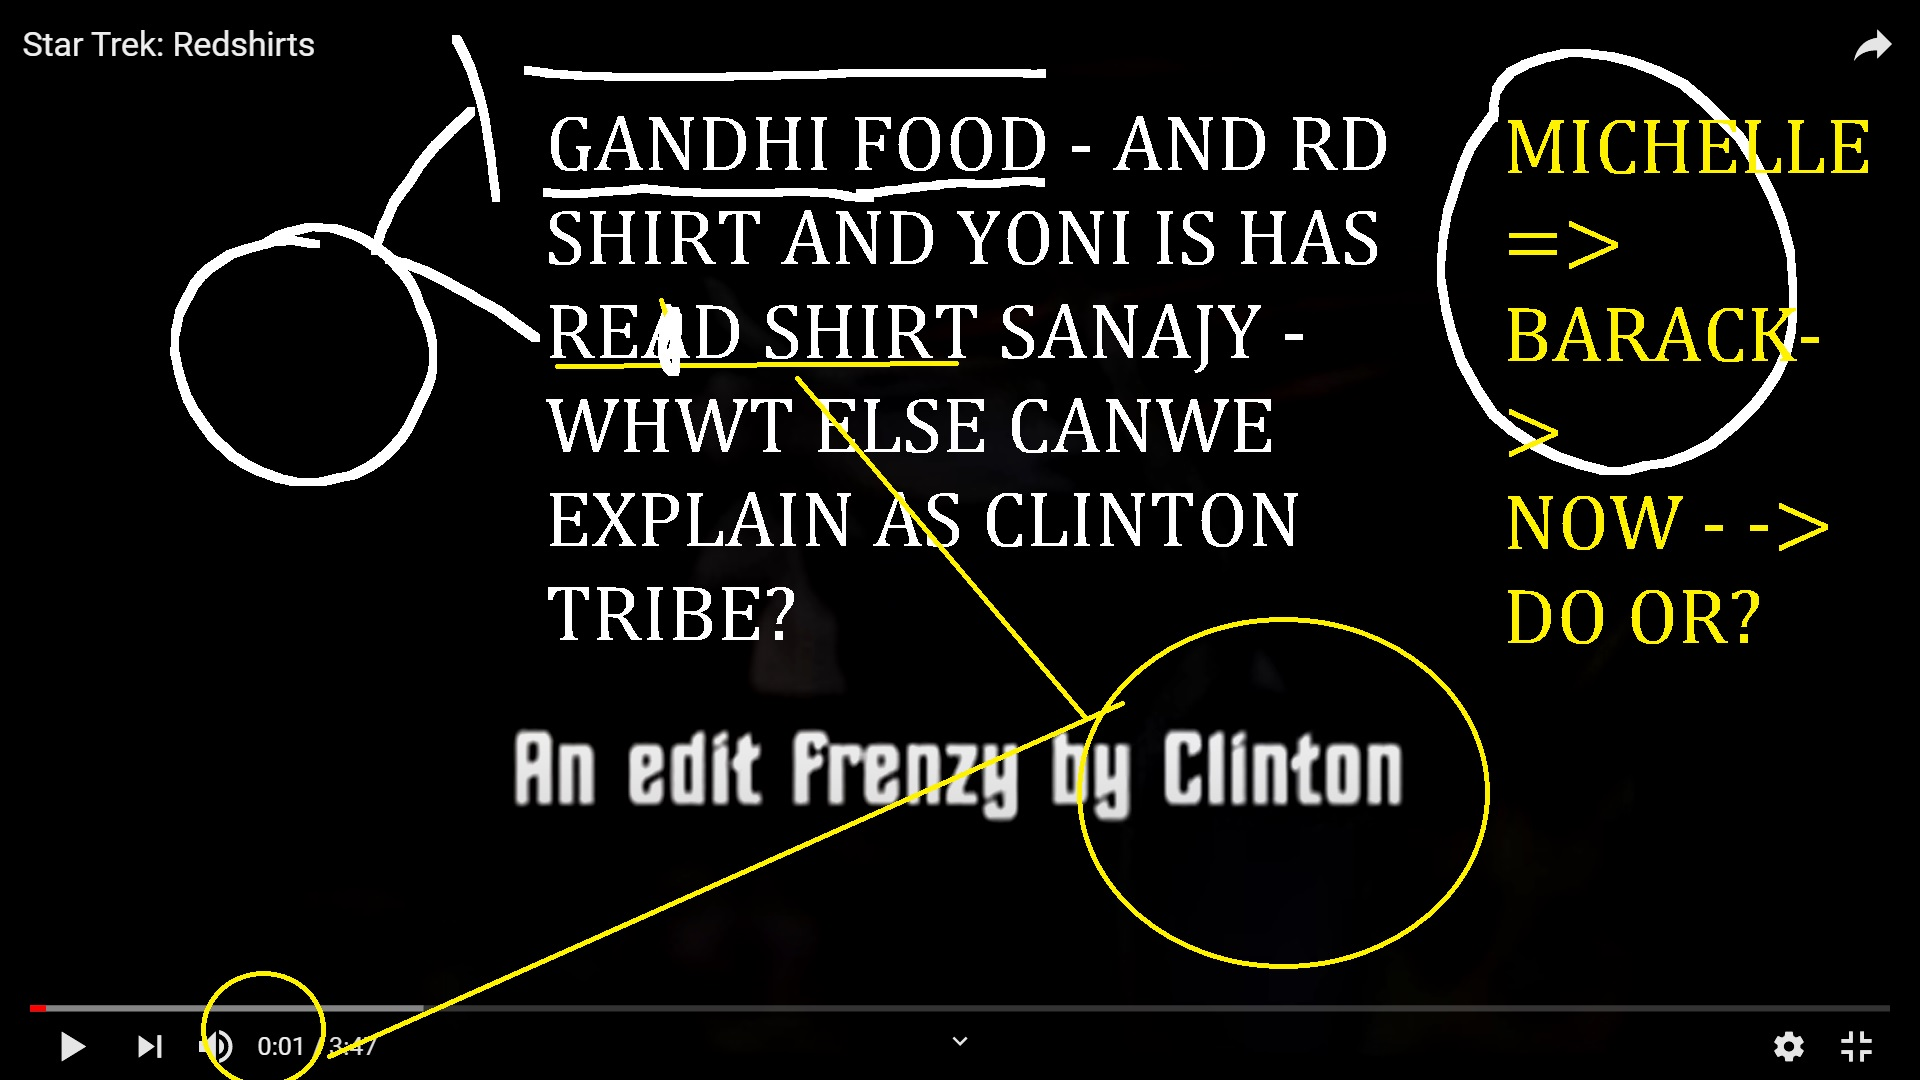 YNI'S RED SHIRT AND AJAY MISHRA DN CLINTON AND GANDHI FOOD ITEM SONG